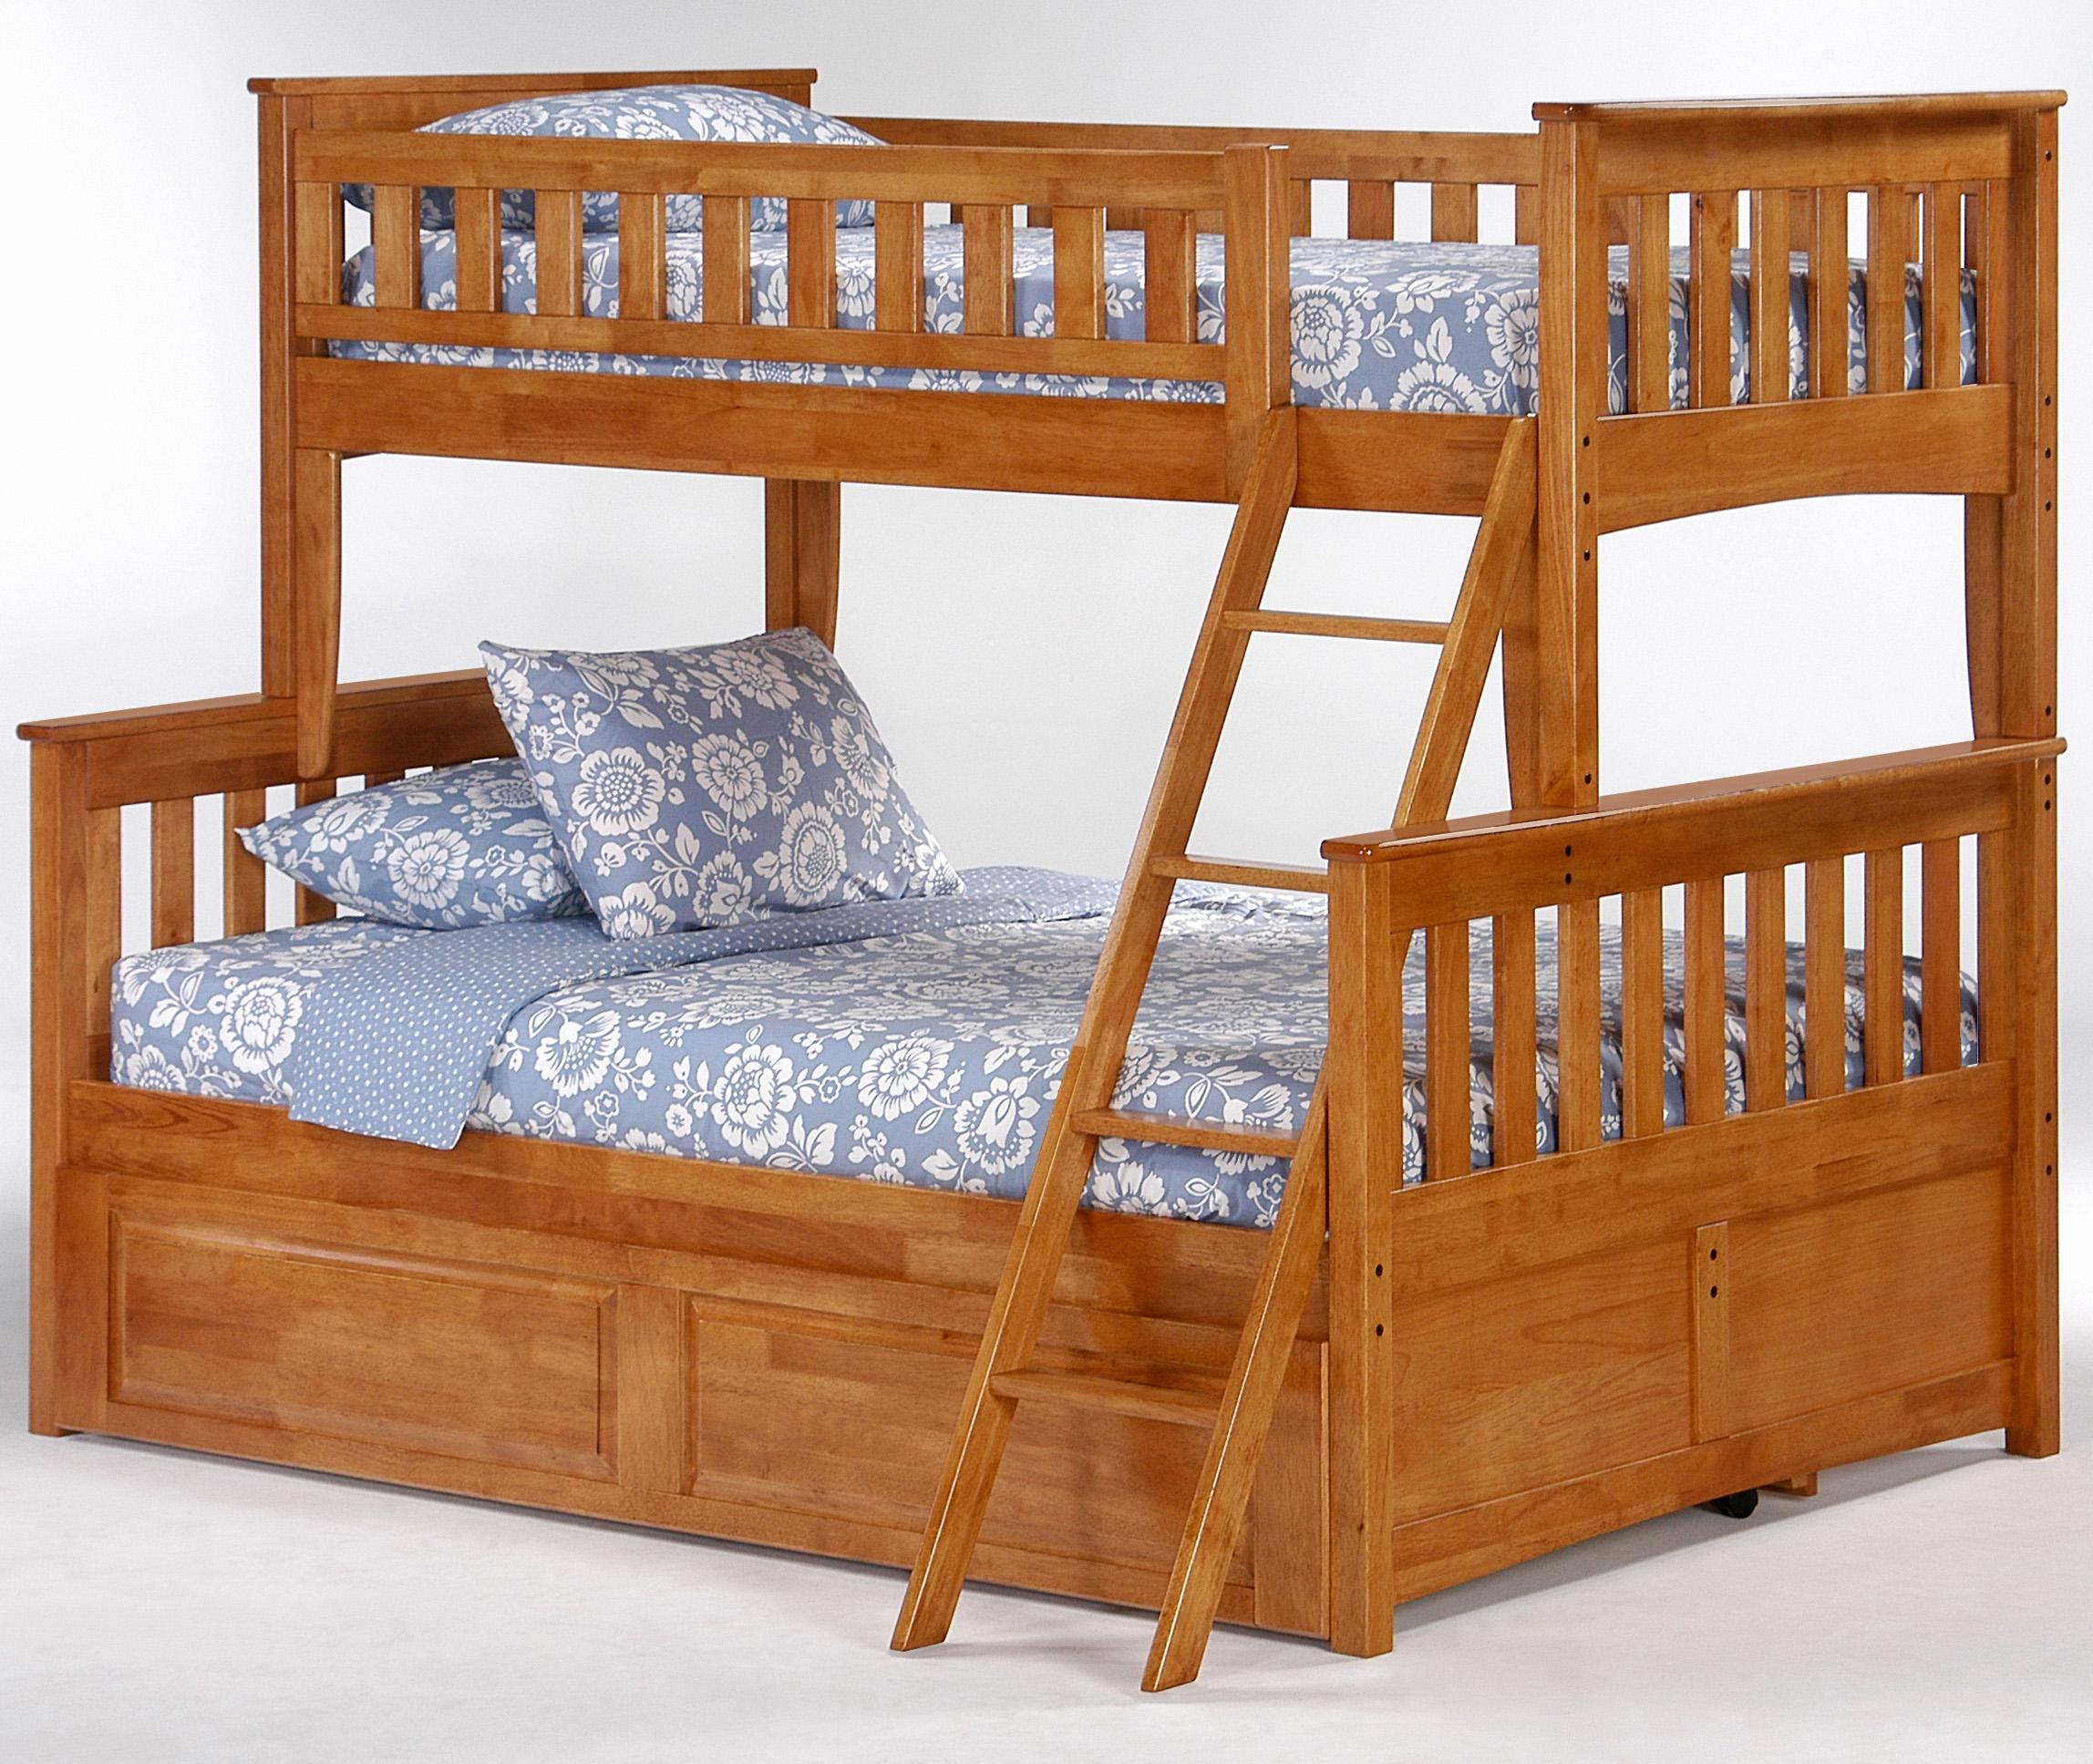 4 Day Furniture: Night & Day Furniture Spice Ginger Twin/Full Bunk Bed With